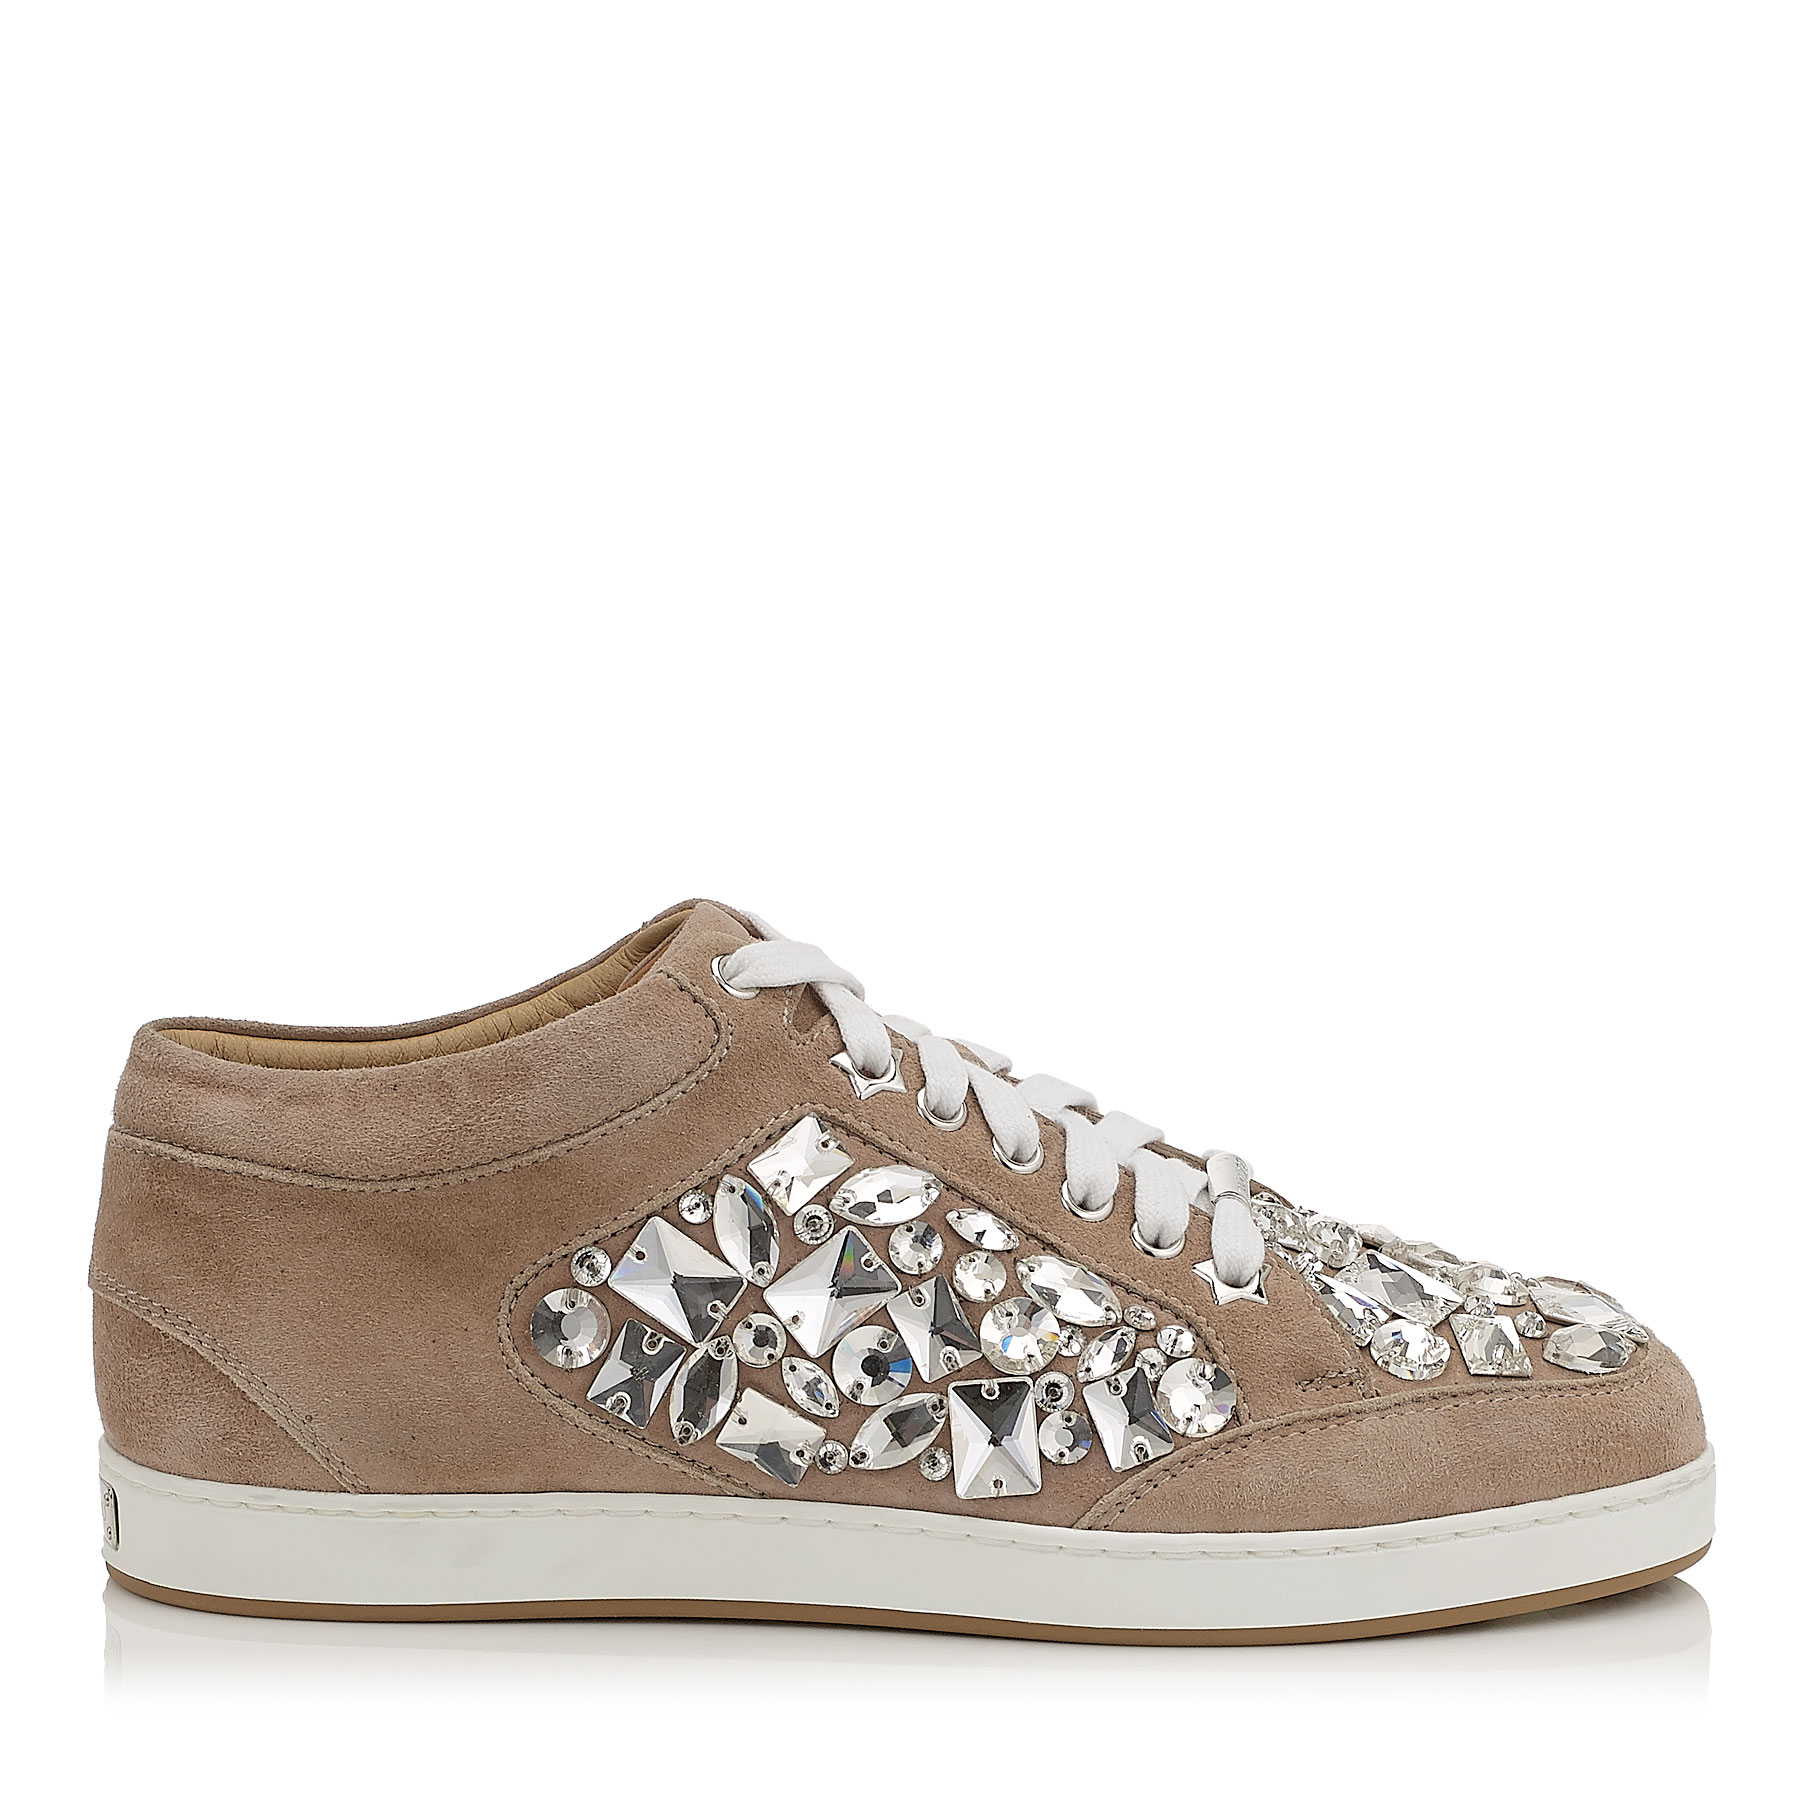 MIAMI Nude Suede with Crystals Low Top Trainers